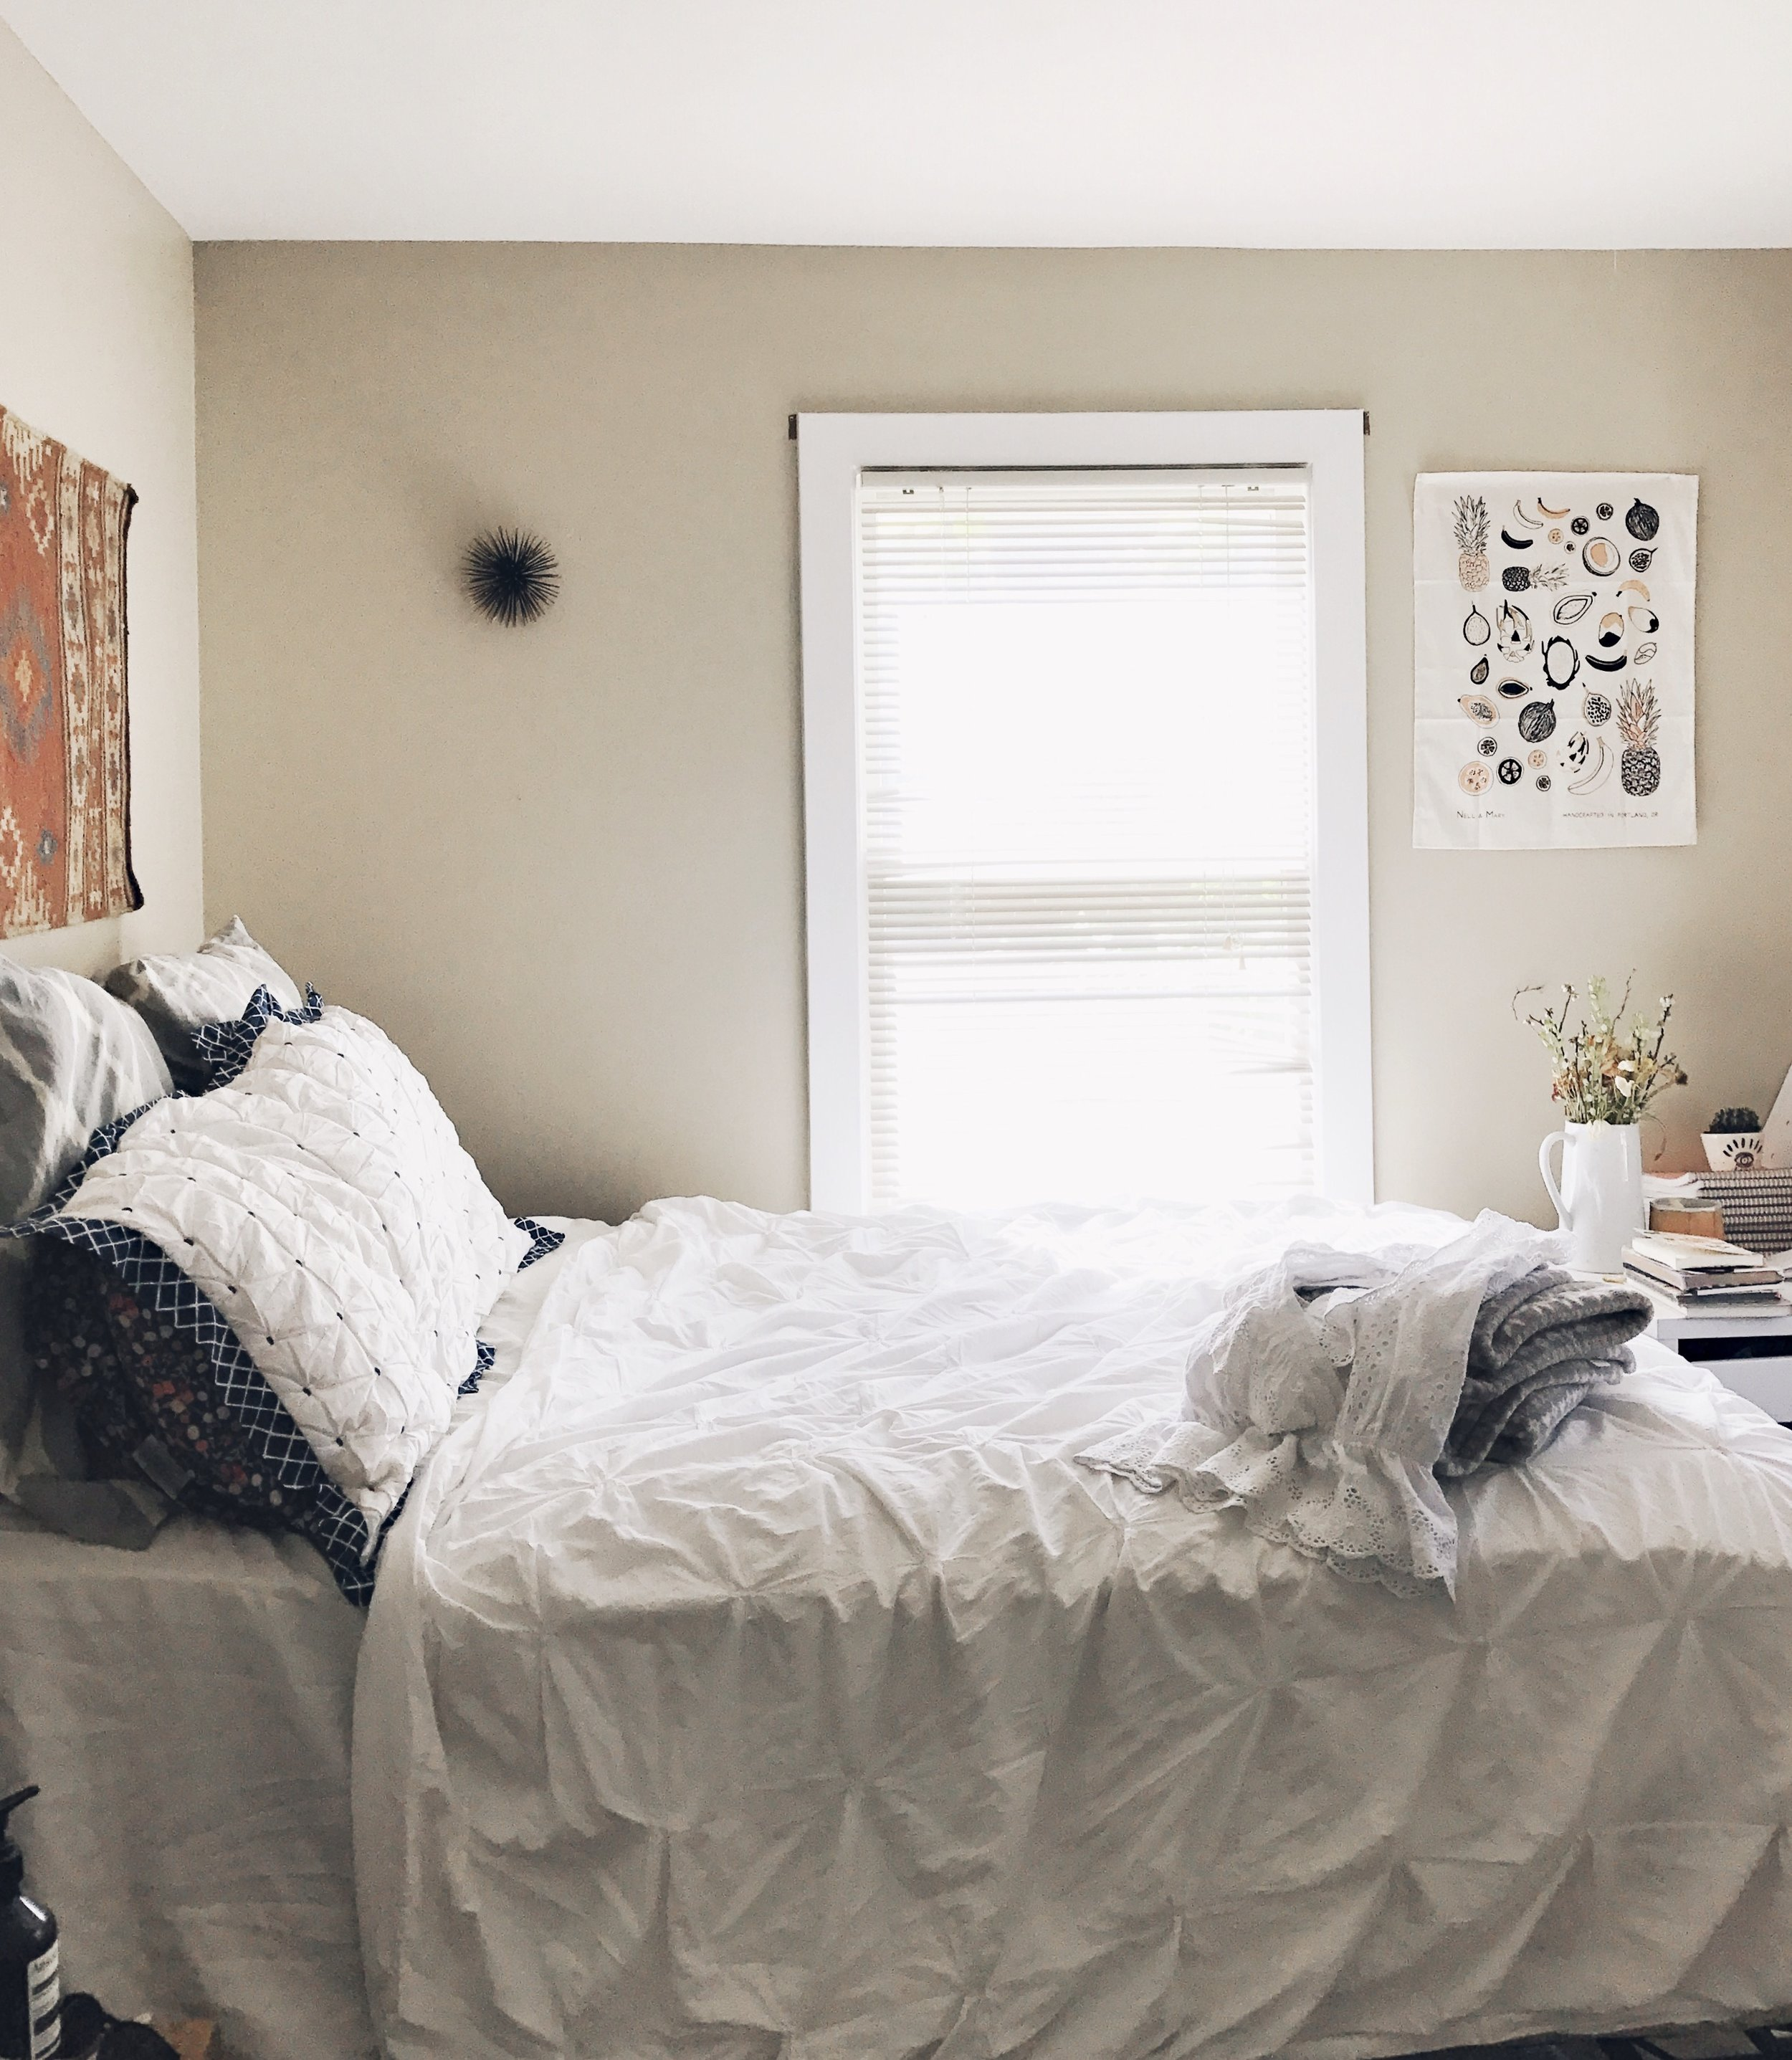 Finding balance in the little things...like making my bed every morning.